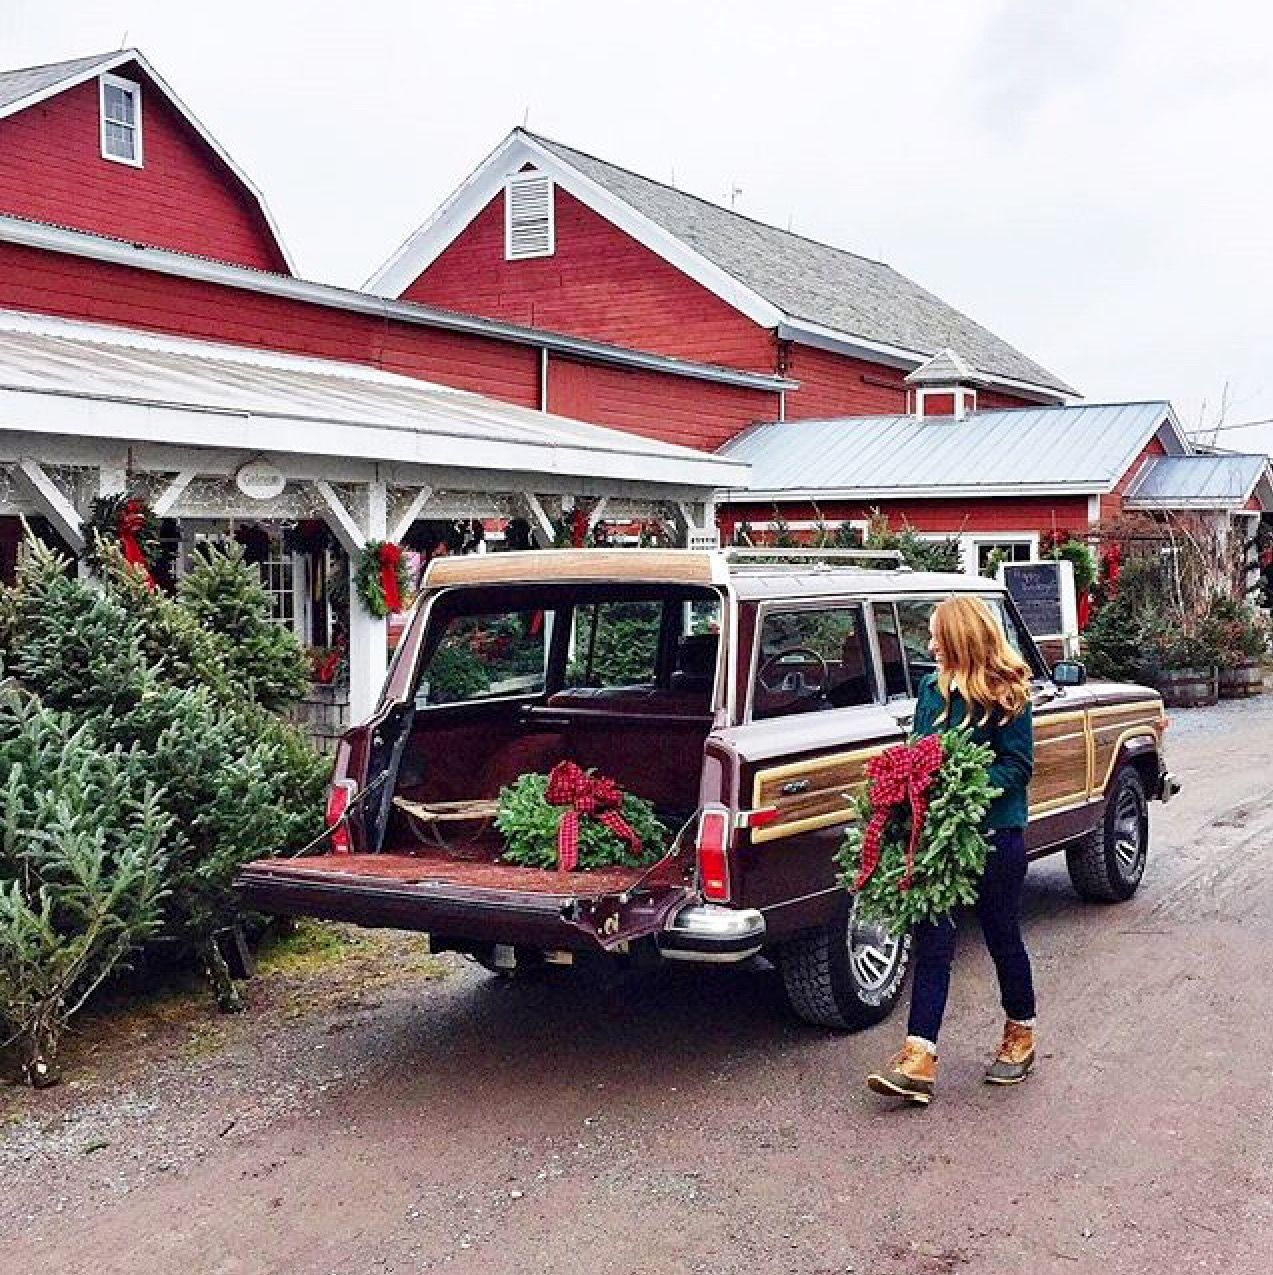 Loading up the Wagoneer with Holiday cheer 🎄!